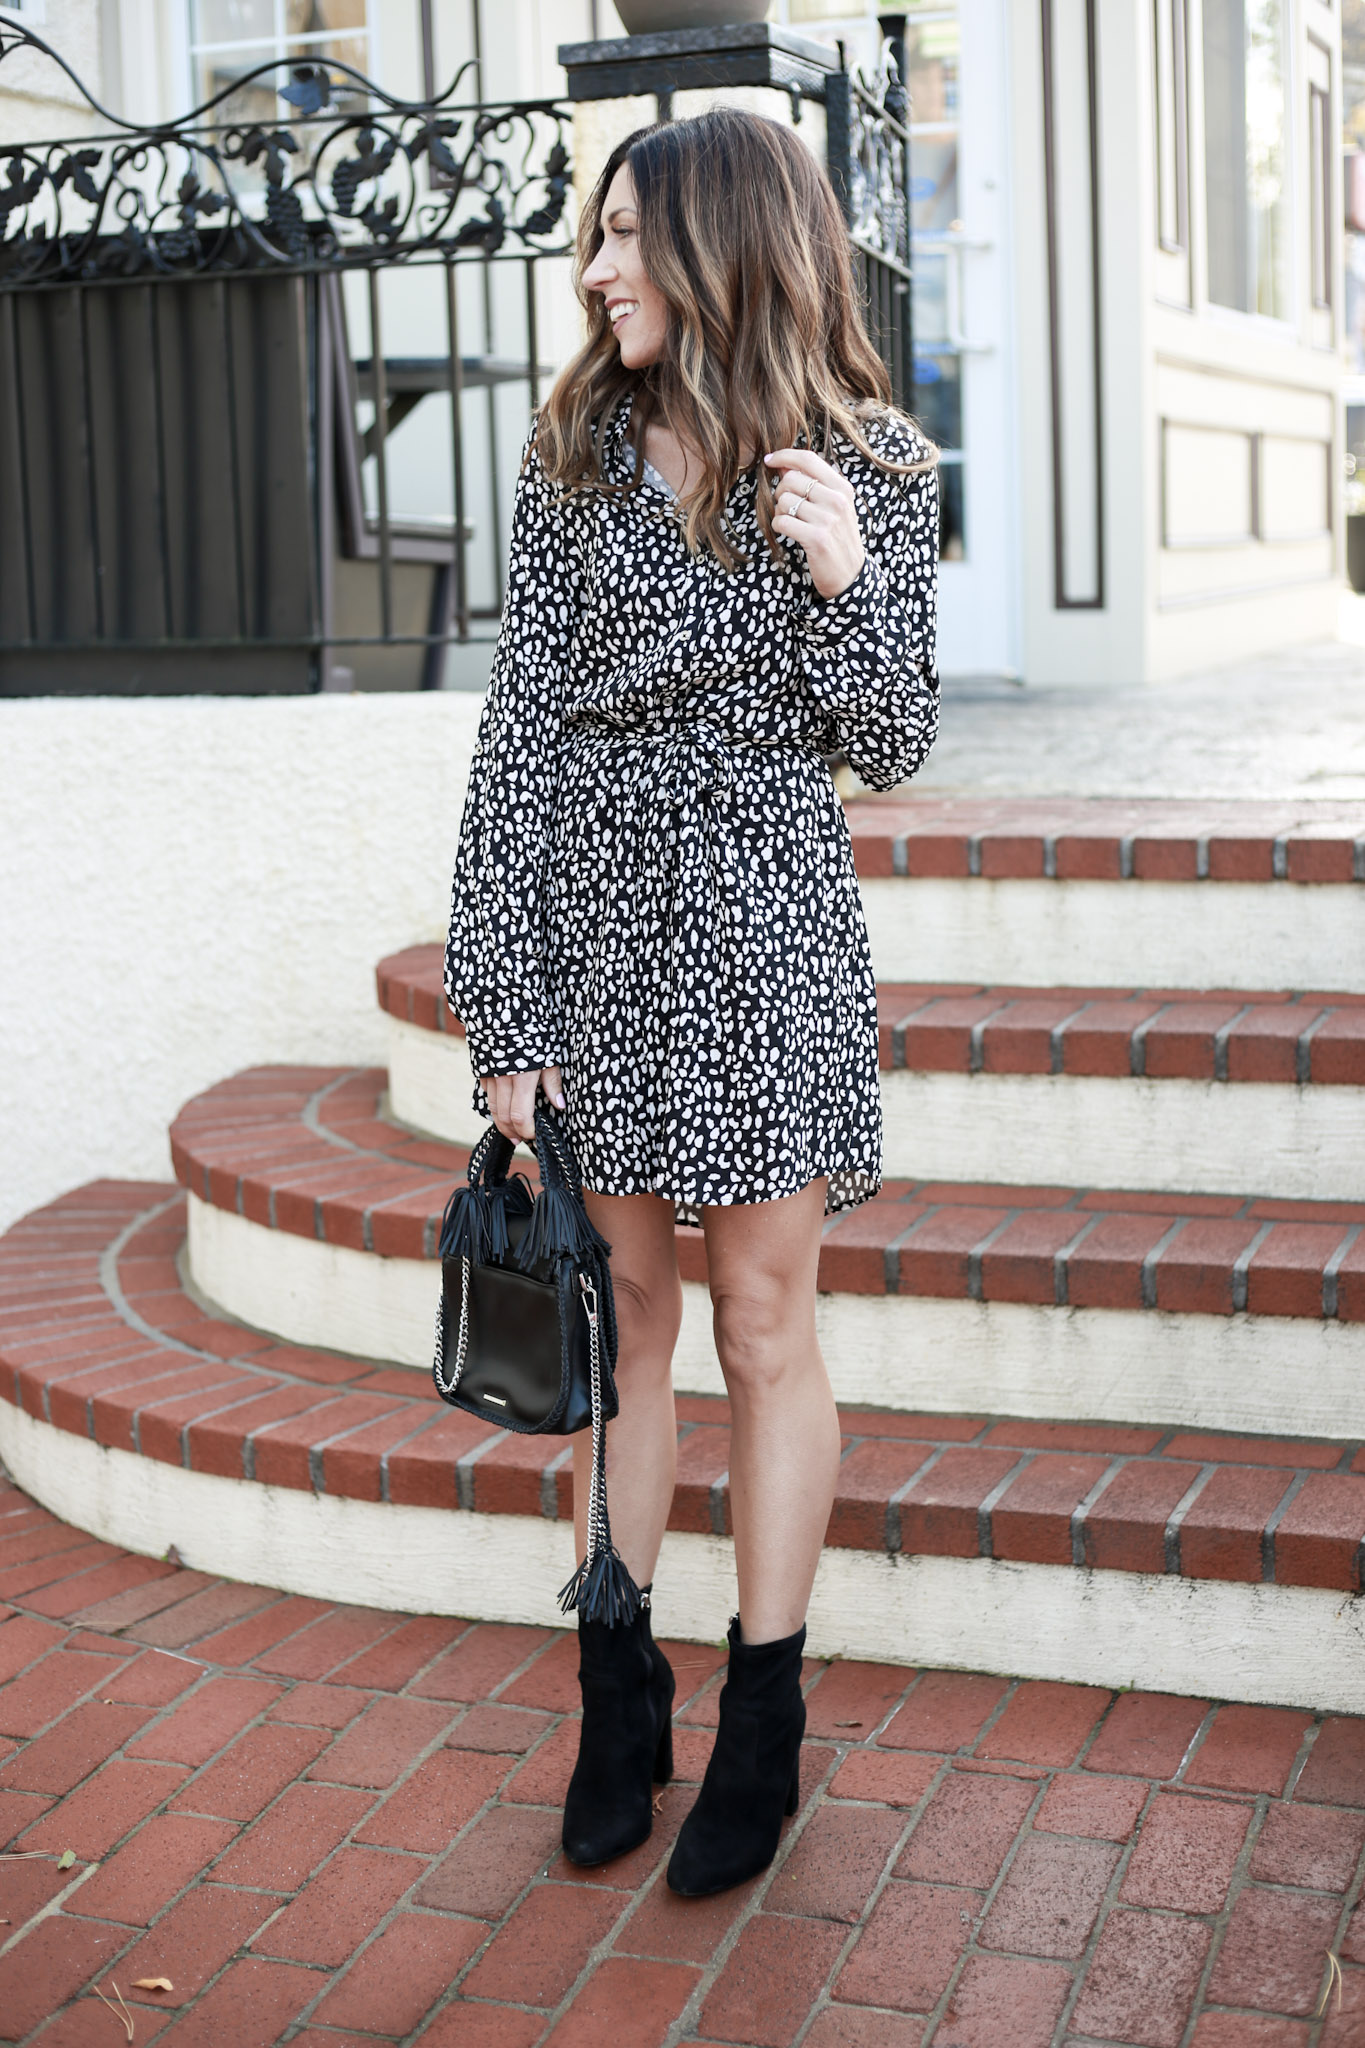 The $20 shirt dress - Printed Shirt Dress Styled 2 Ways by Boston fashion blogger Living Life Pretty